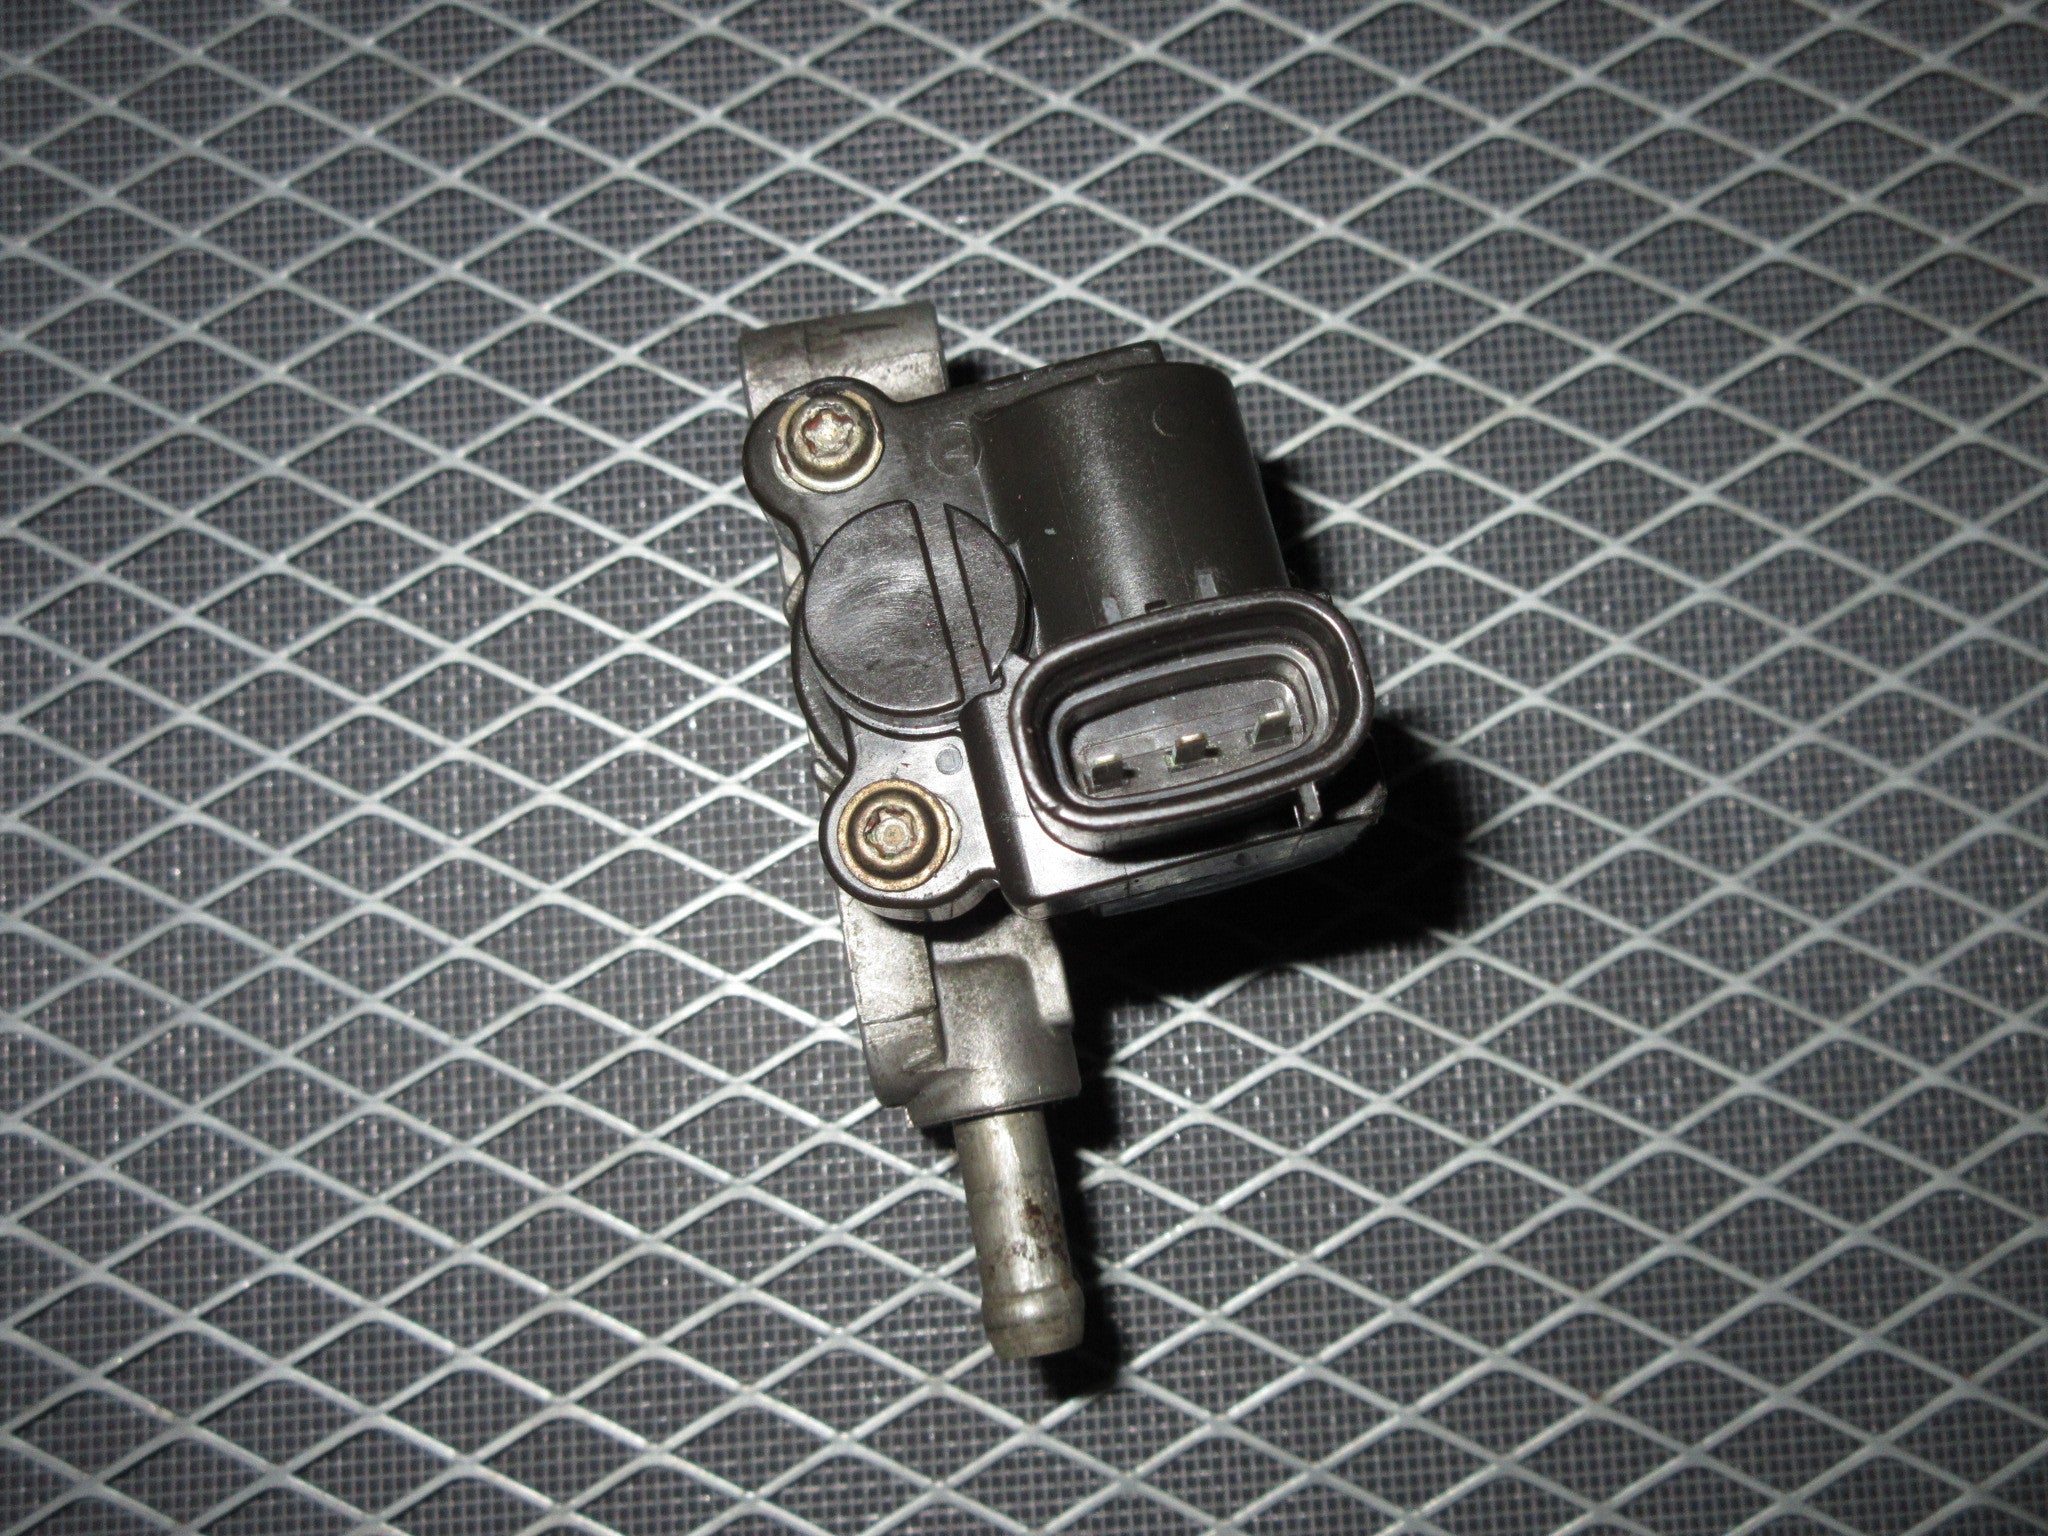 Jdm 98 99 00 01 02 Honda Accord None Ulev F23a Idle Air Control 1999 Black Valve Iacv